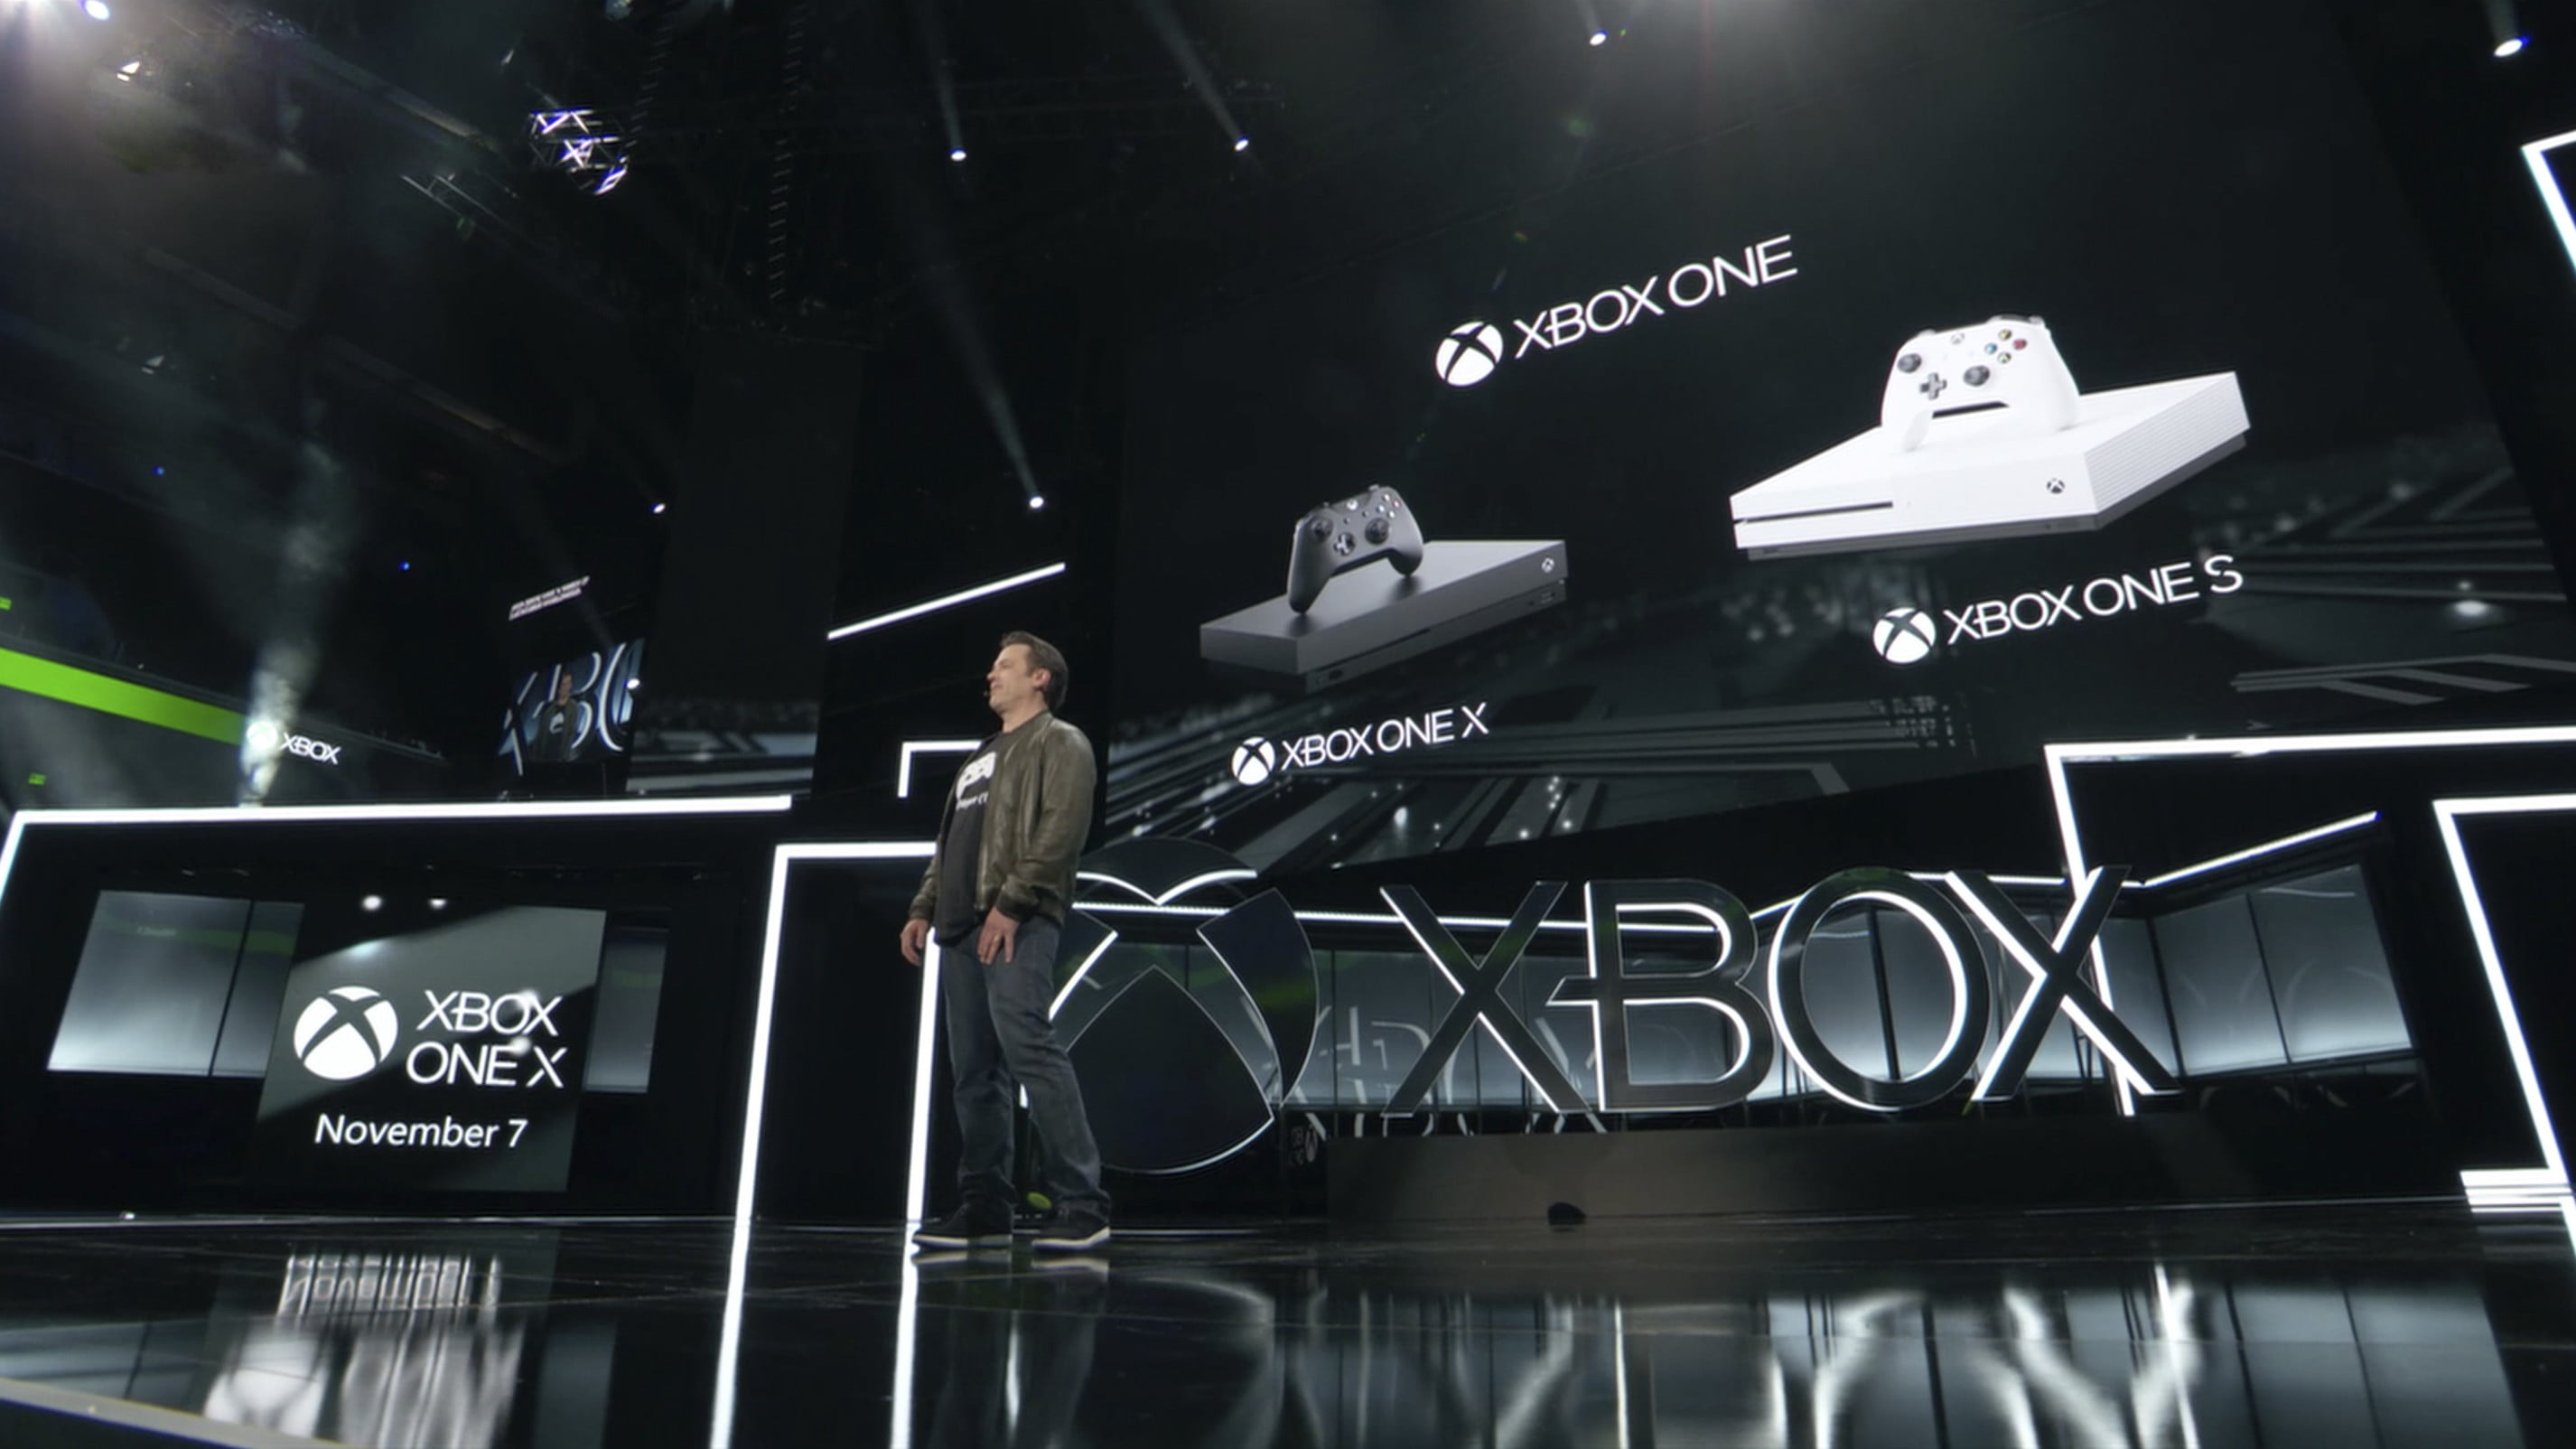 xbox one x announced screen shot 2017 06 11 at 2 05 16 pm